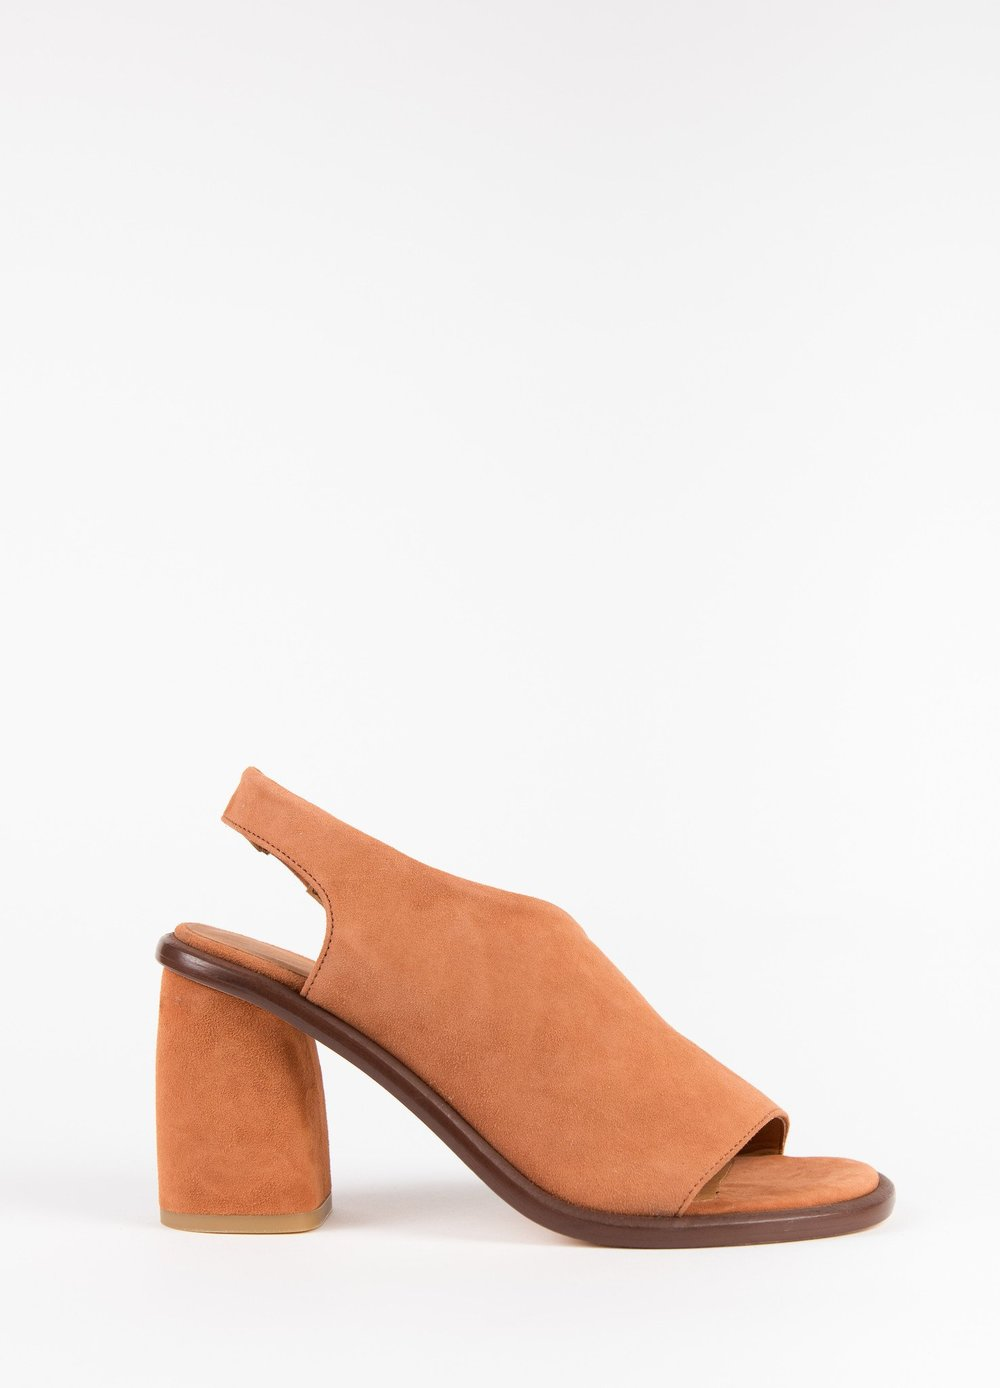 Miista Elizabeth. Clementines. Was: $280. Now: $140.